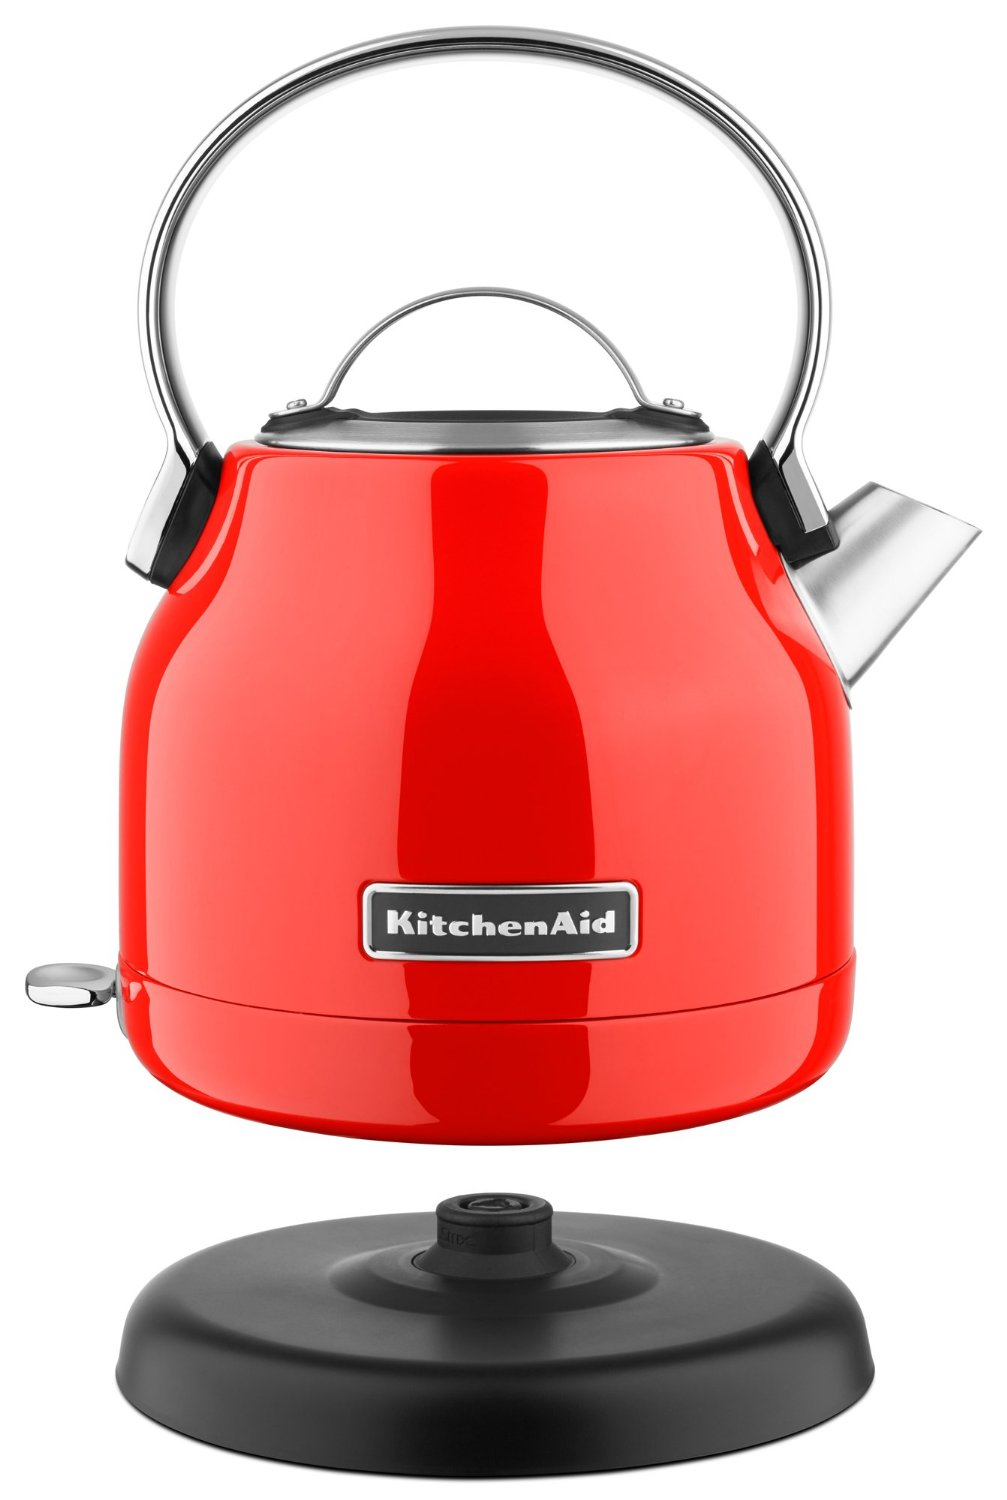 KitchenAid Electric Water Kettle